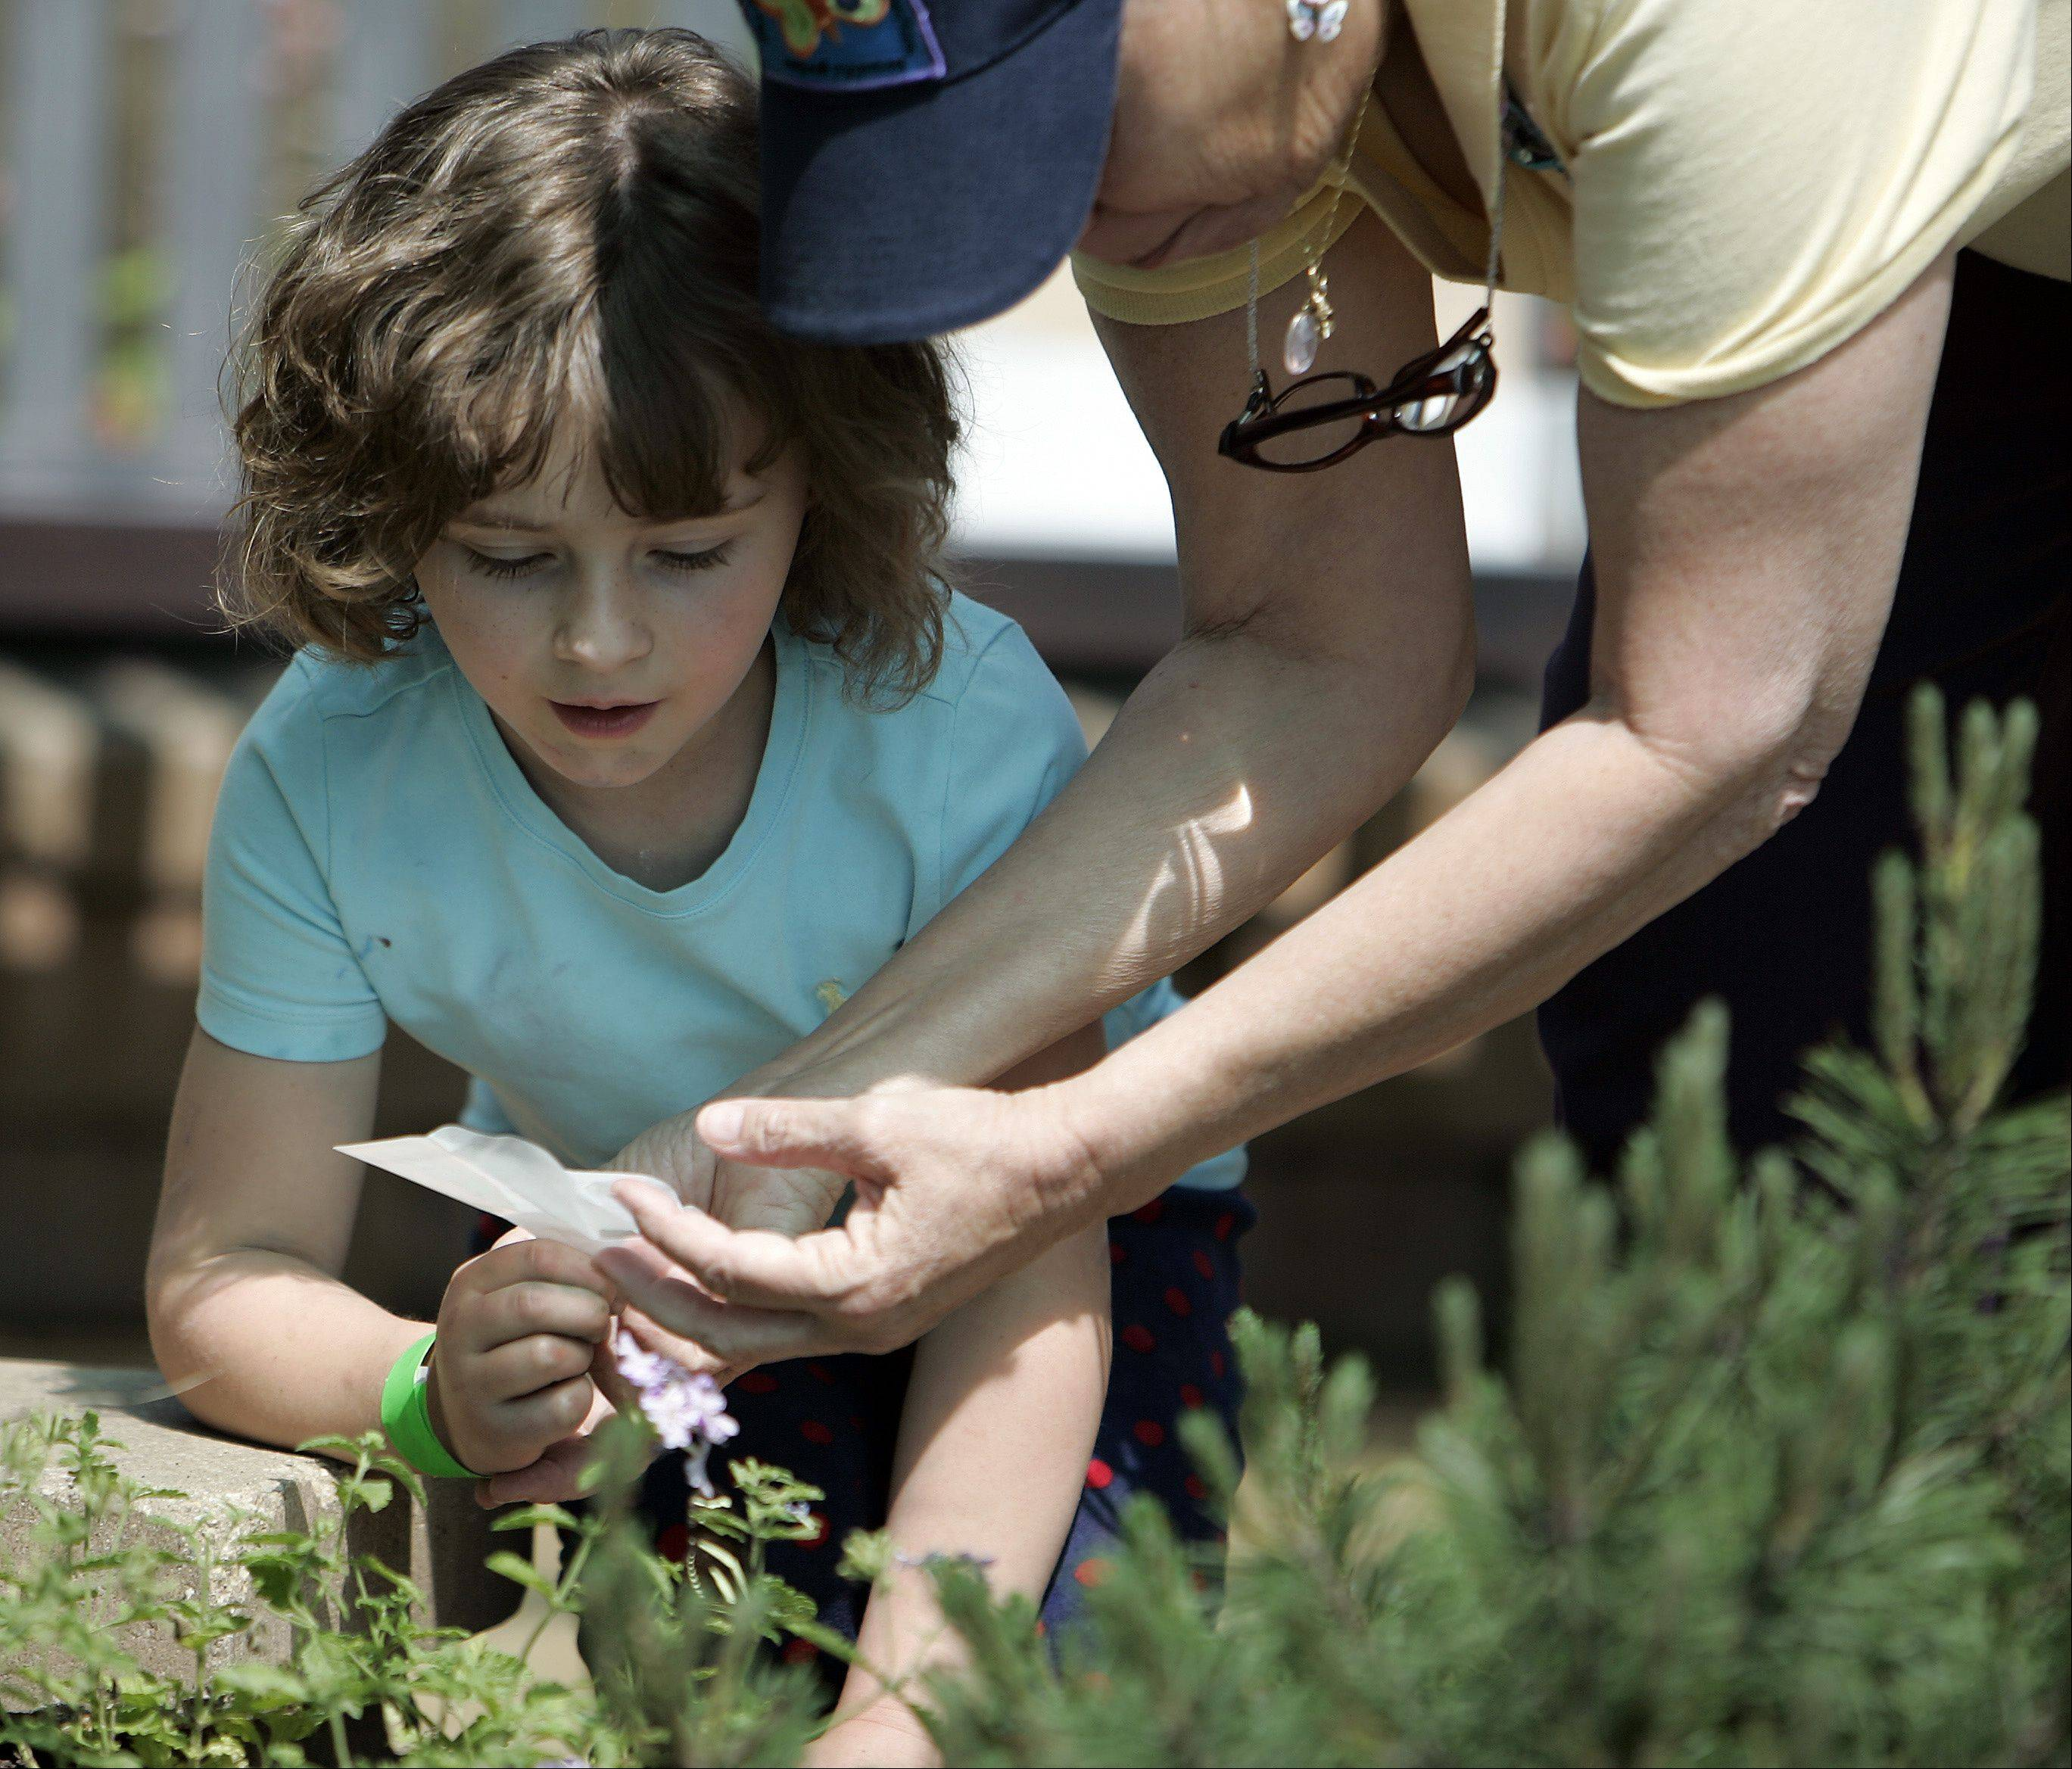 Six-year-old Olivia Gebhardt of Batavia gets a helping hand from her nanny, Susan Jensen, while releasing a butterfly during the 10th anniversary of the opening of the Butterfly House at Peck Farm Park in Geneva Friday. Jensen is a volunteer at Peck Farm Park.